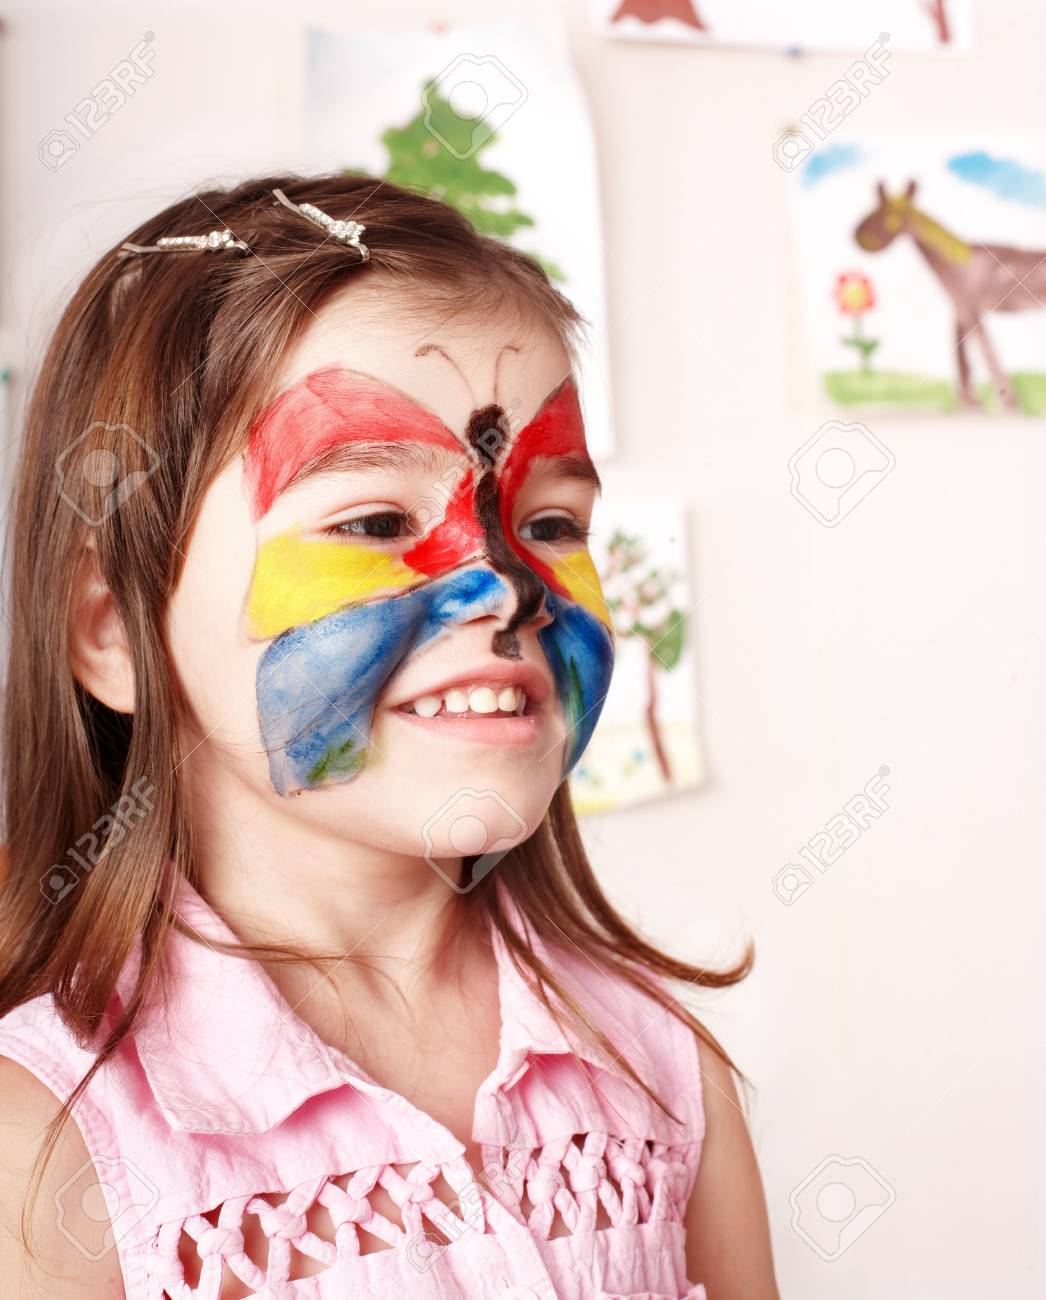 Little girl  making face painting. Stock Photo - 8239245